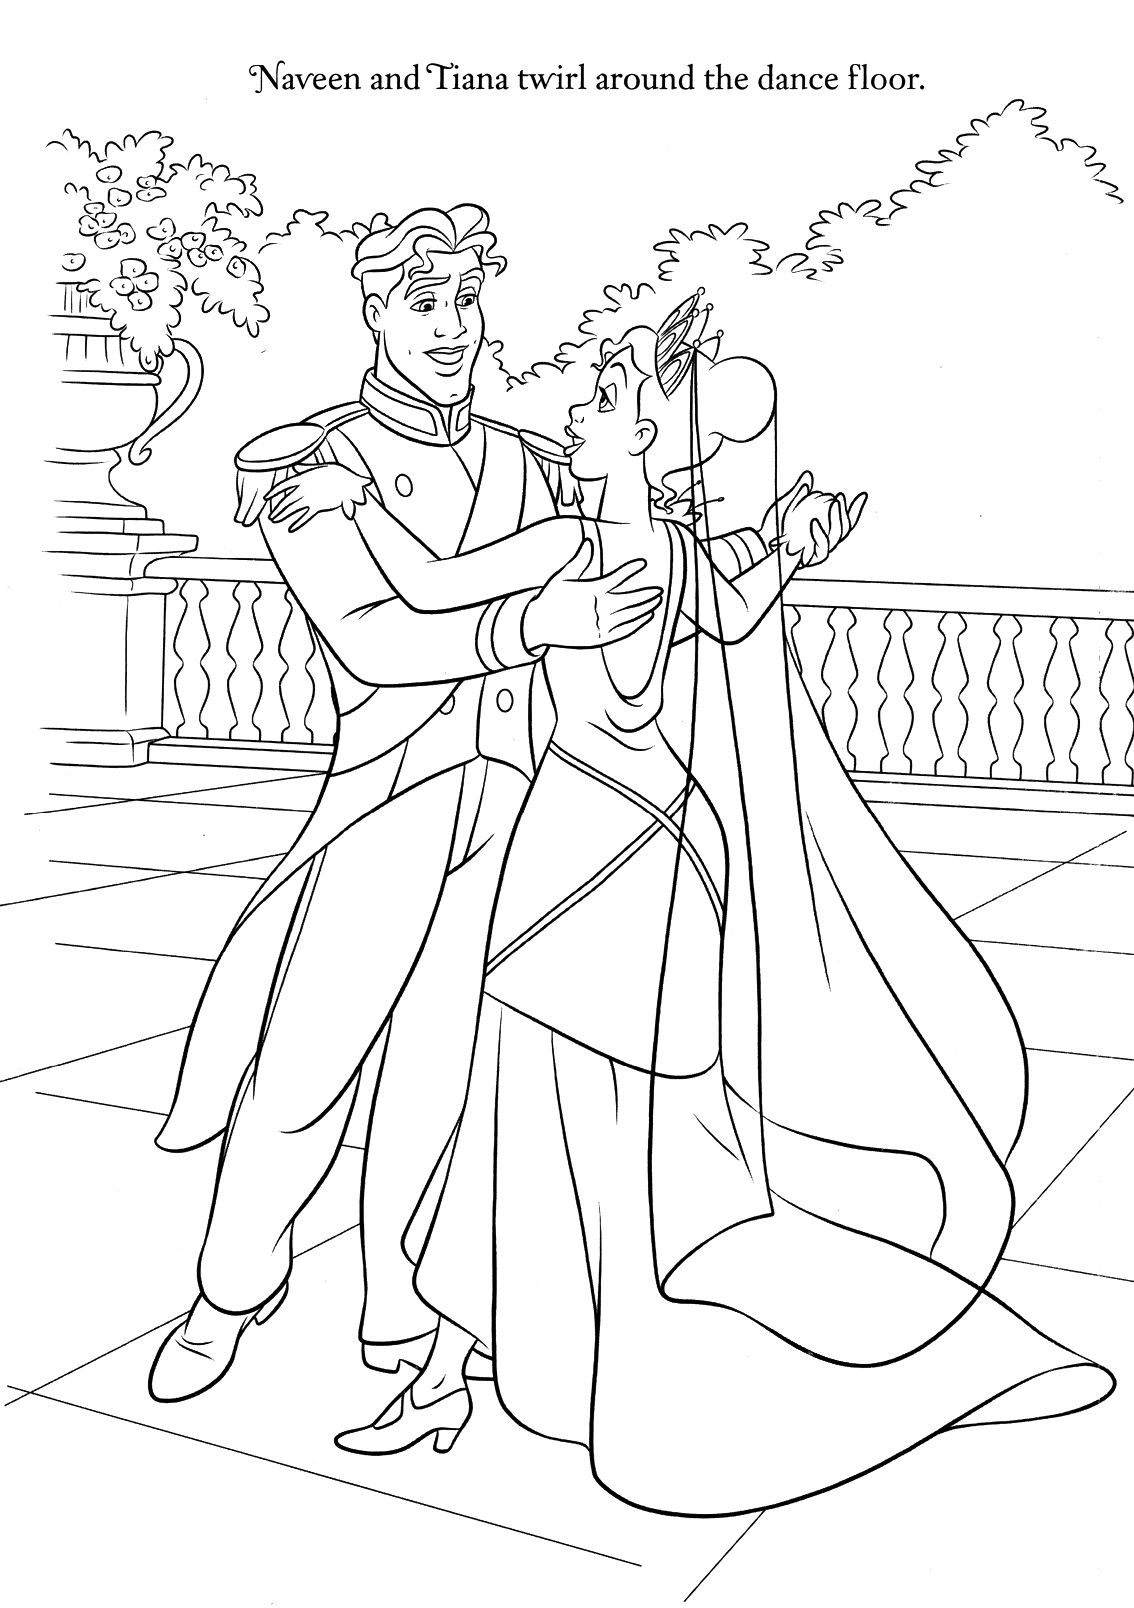 wedding day disney wedding coloring pages wedding wishes 31 by disneysexual via flickr snow white coloring disney wedding day pages wedding